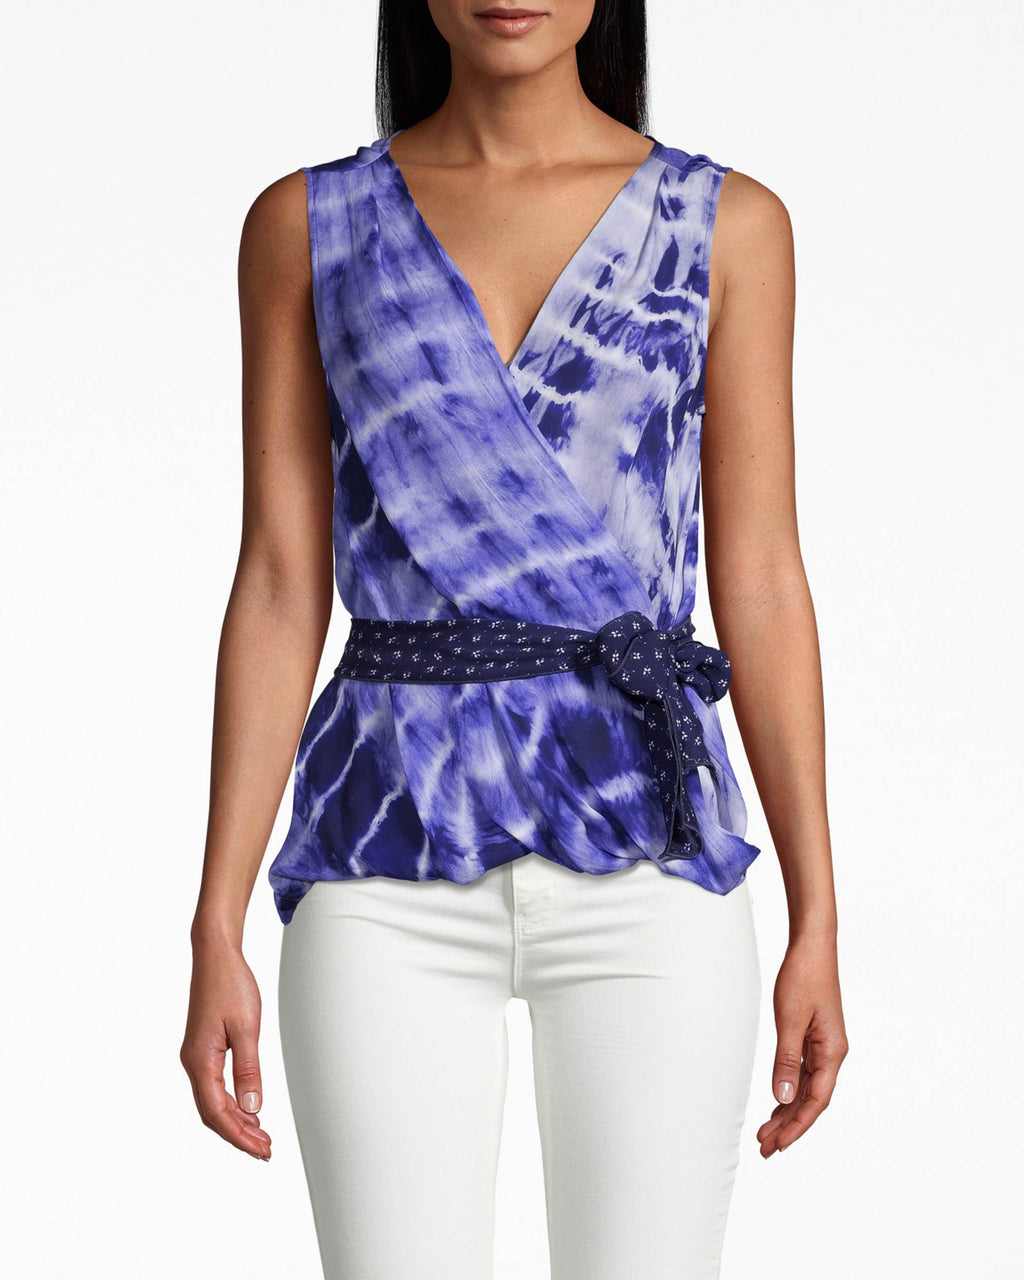 BI10171 - WATERCOLOR TIE DYE UPSIDE DOWN BLOUSE - tops - blouses - TIE DYE AND POLKA DOTS ARE THE PERFECT PAIR ON THIS FUN WRAP BLOUSE. WIDE STRAPS WRAP IN THE FRONT FOR A ELEGANT EFFECT WHILE THE POLKA DOT TIECINCHES AT THE SIDE. STANDOUT BY PAIRING WITH WHITE DENIM.